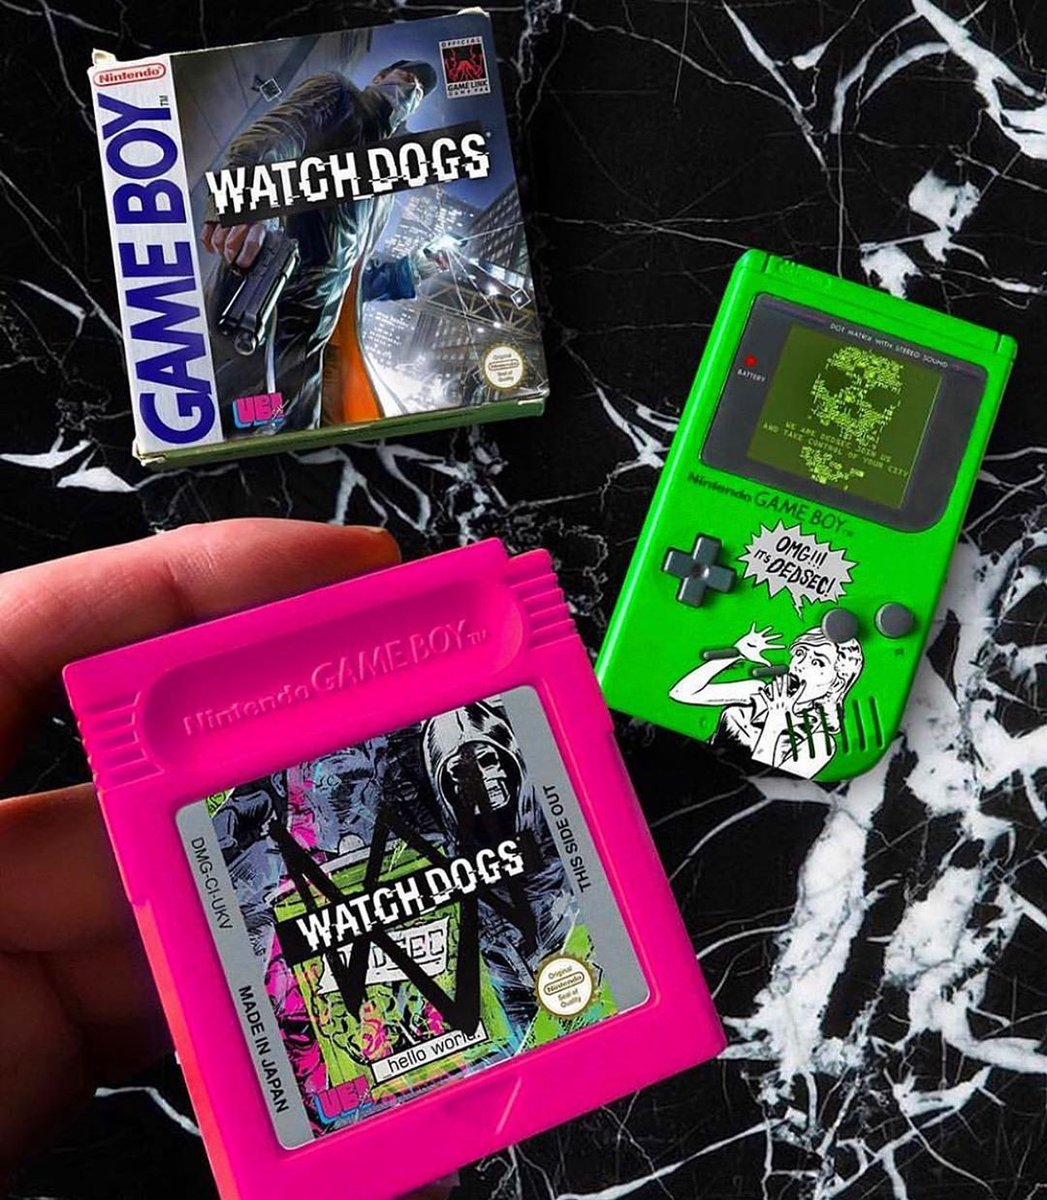 Boy I just loved playing some #WatchDogs on the #GB #Gameboy growing up. pic.twitter.com/kWj4FuSgKh